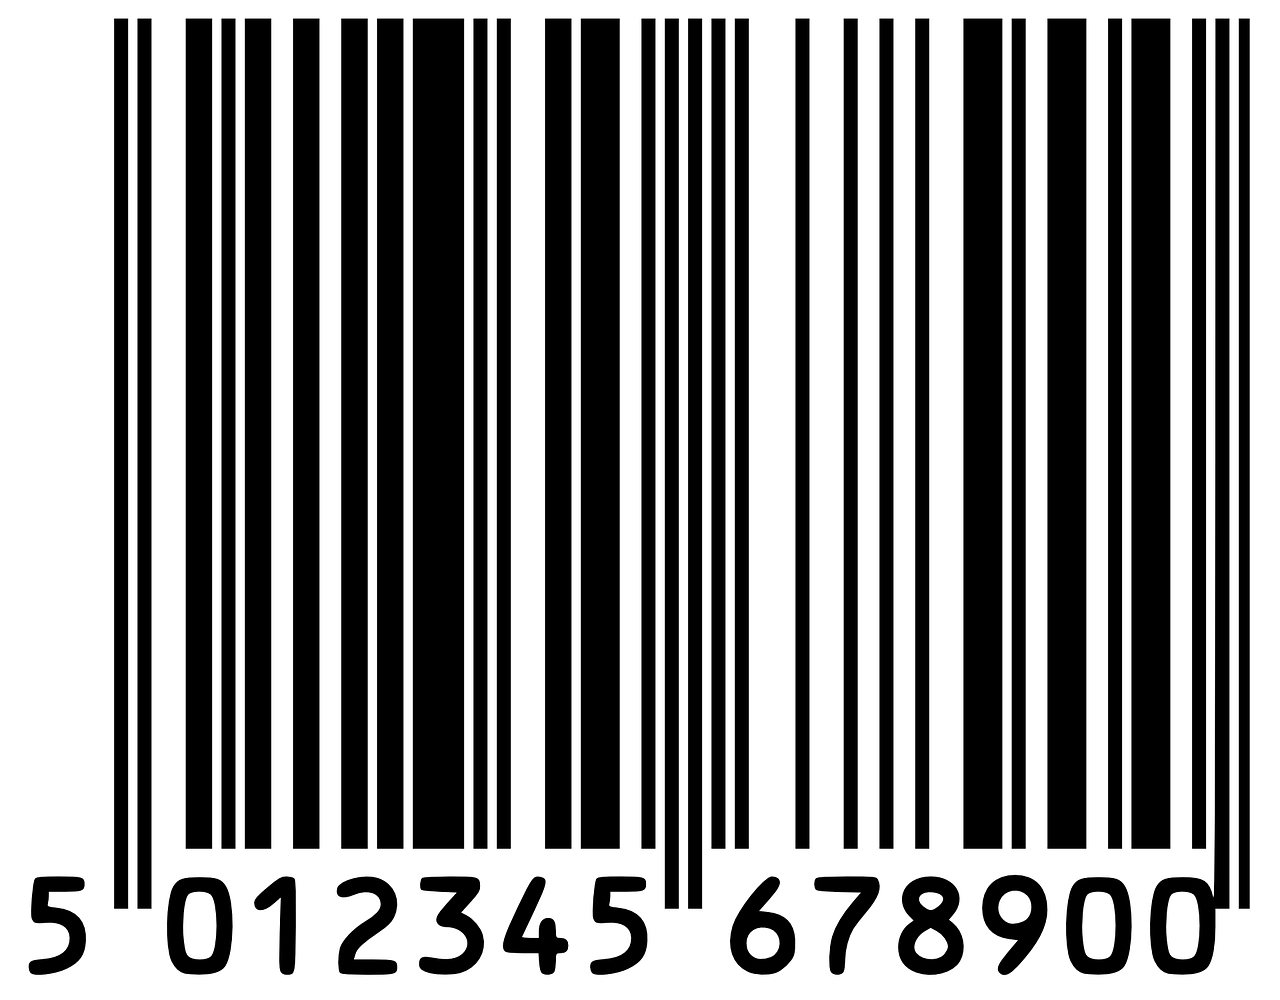 Boarding Pass Barcode Info That Can Be Learned Is Terrifying Blog